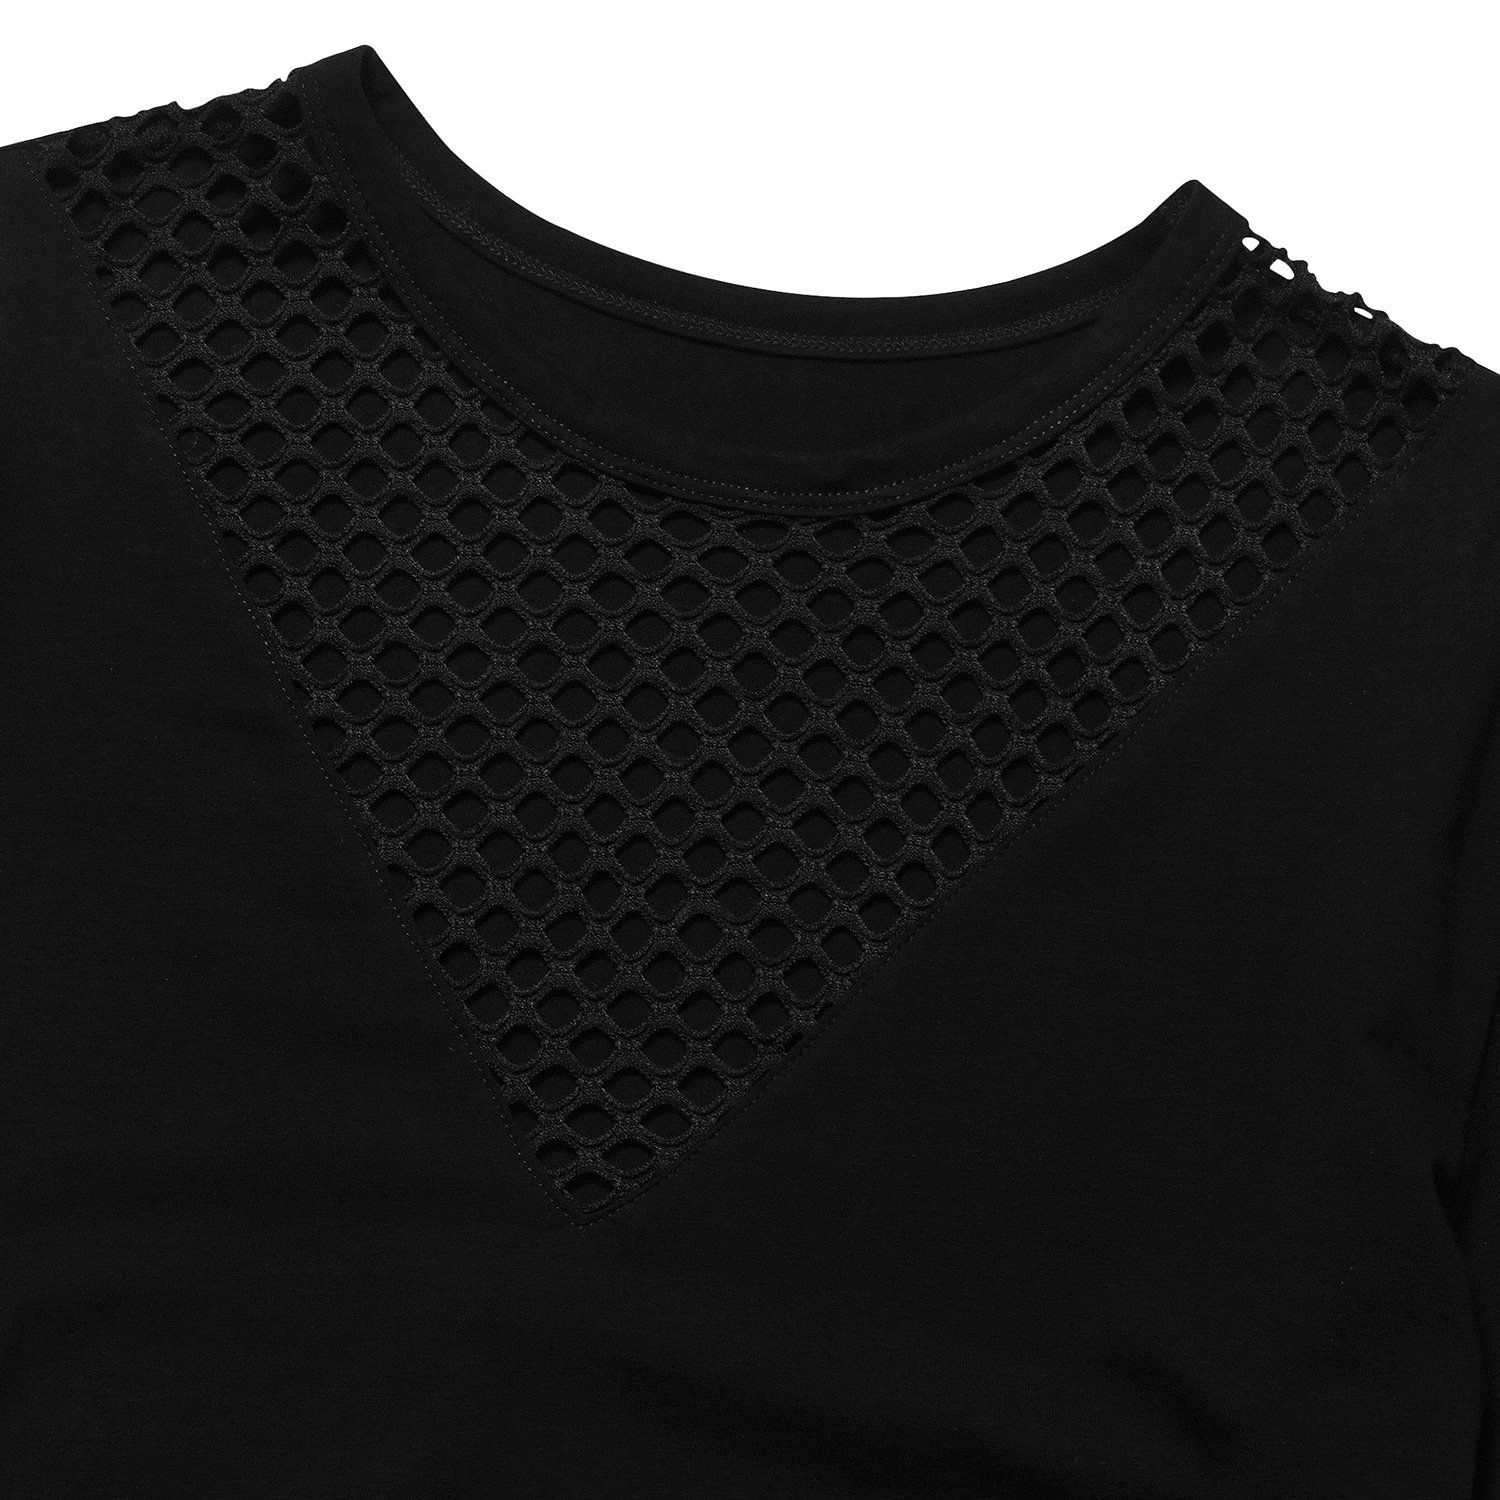 short sleeve crop tops for women Black Large by Perfashion (Image #6)